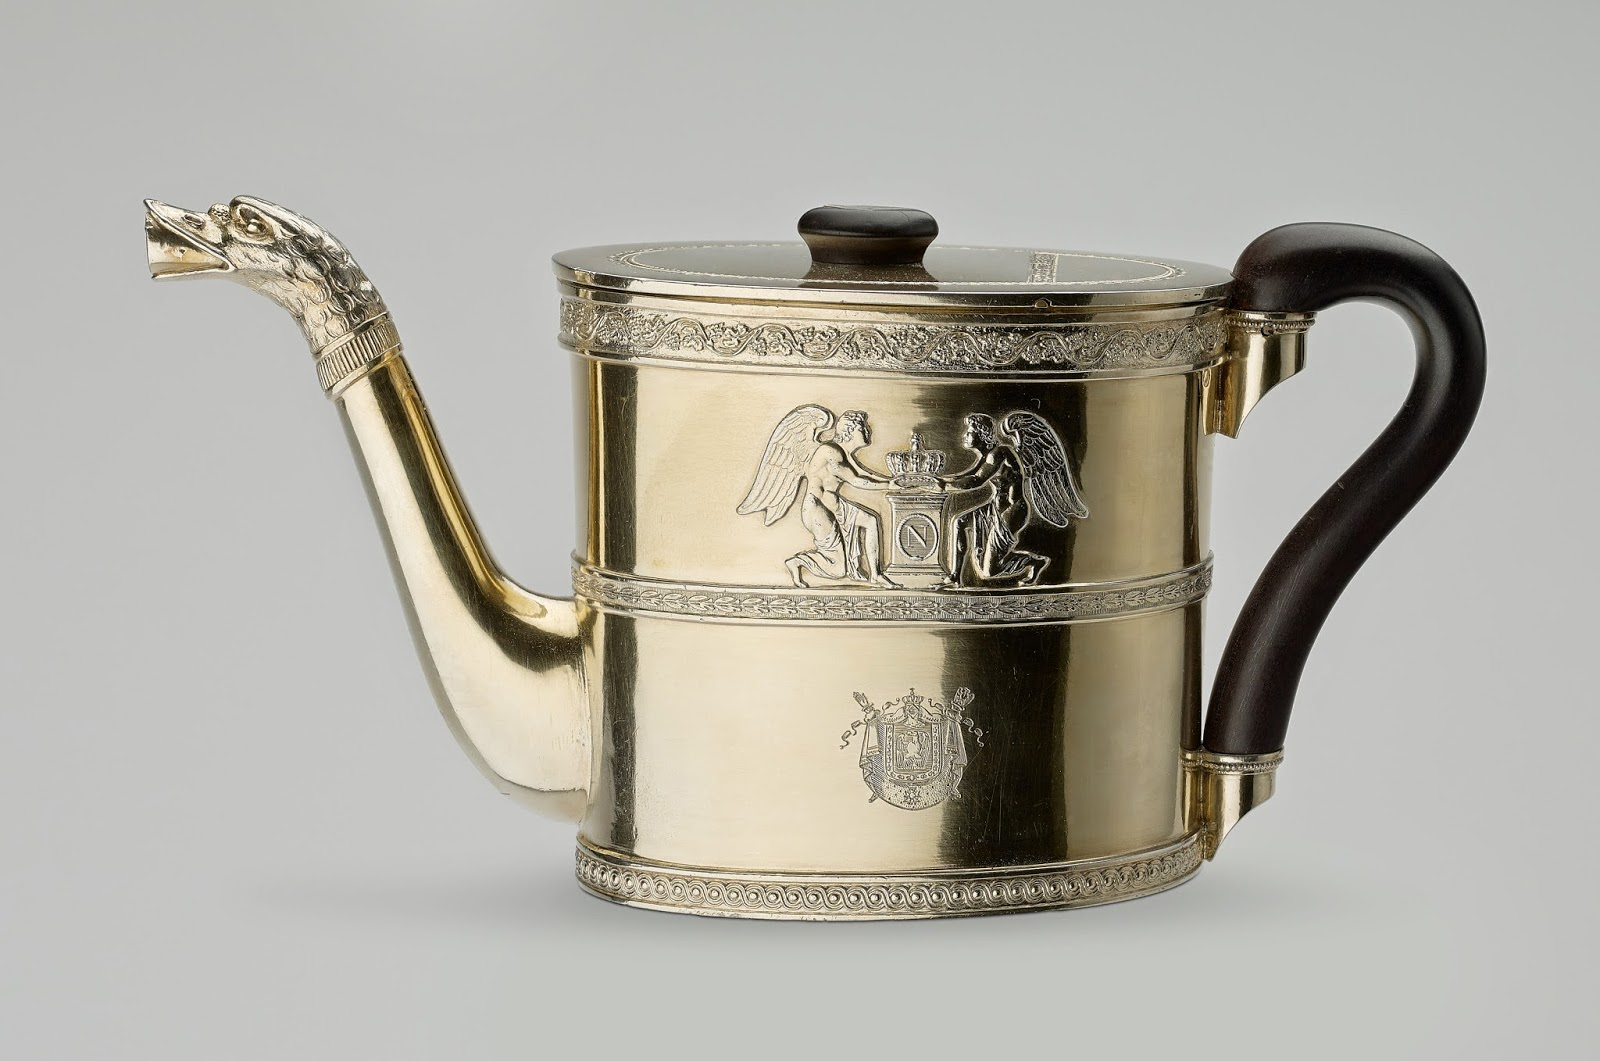 Silver-gilt teapot made by Martin Guillaume Biennais,  engraved with Napoleon's coat of arms  acquired by Queen Mary - Royal Collection Trust  © Her Majesty Queen Elizabeth II 2015